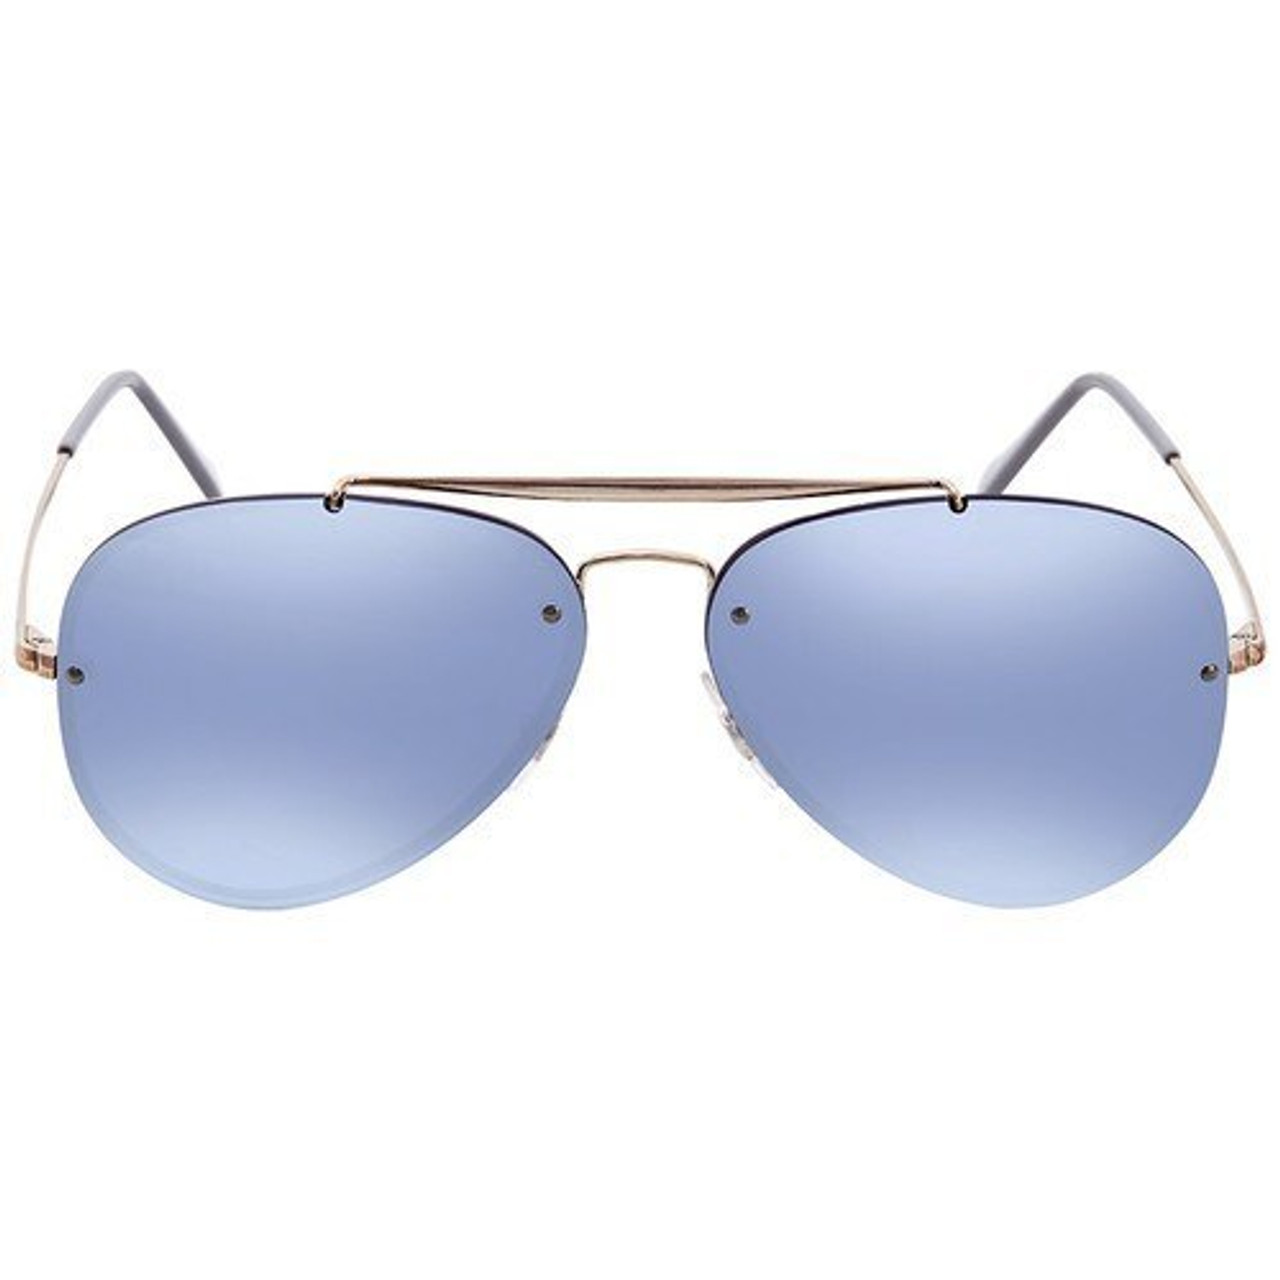 10803fc10a63b7 Ray-Ban Highstreet Blaze Aviators In Copper Bronze Violet Mirror - CHROME